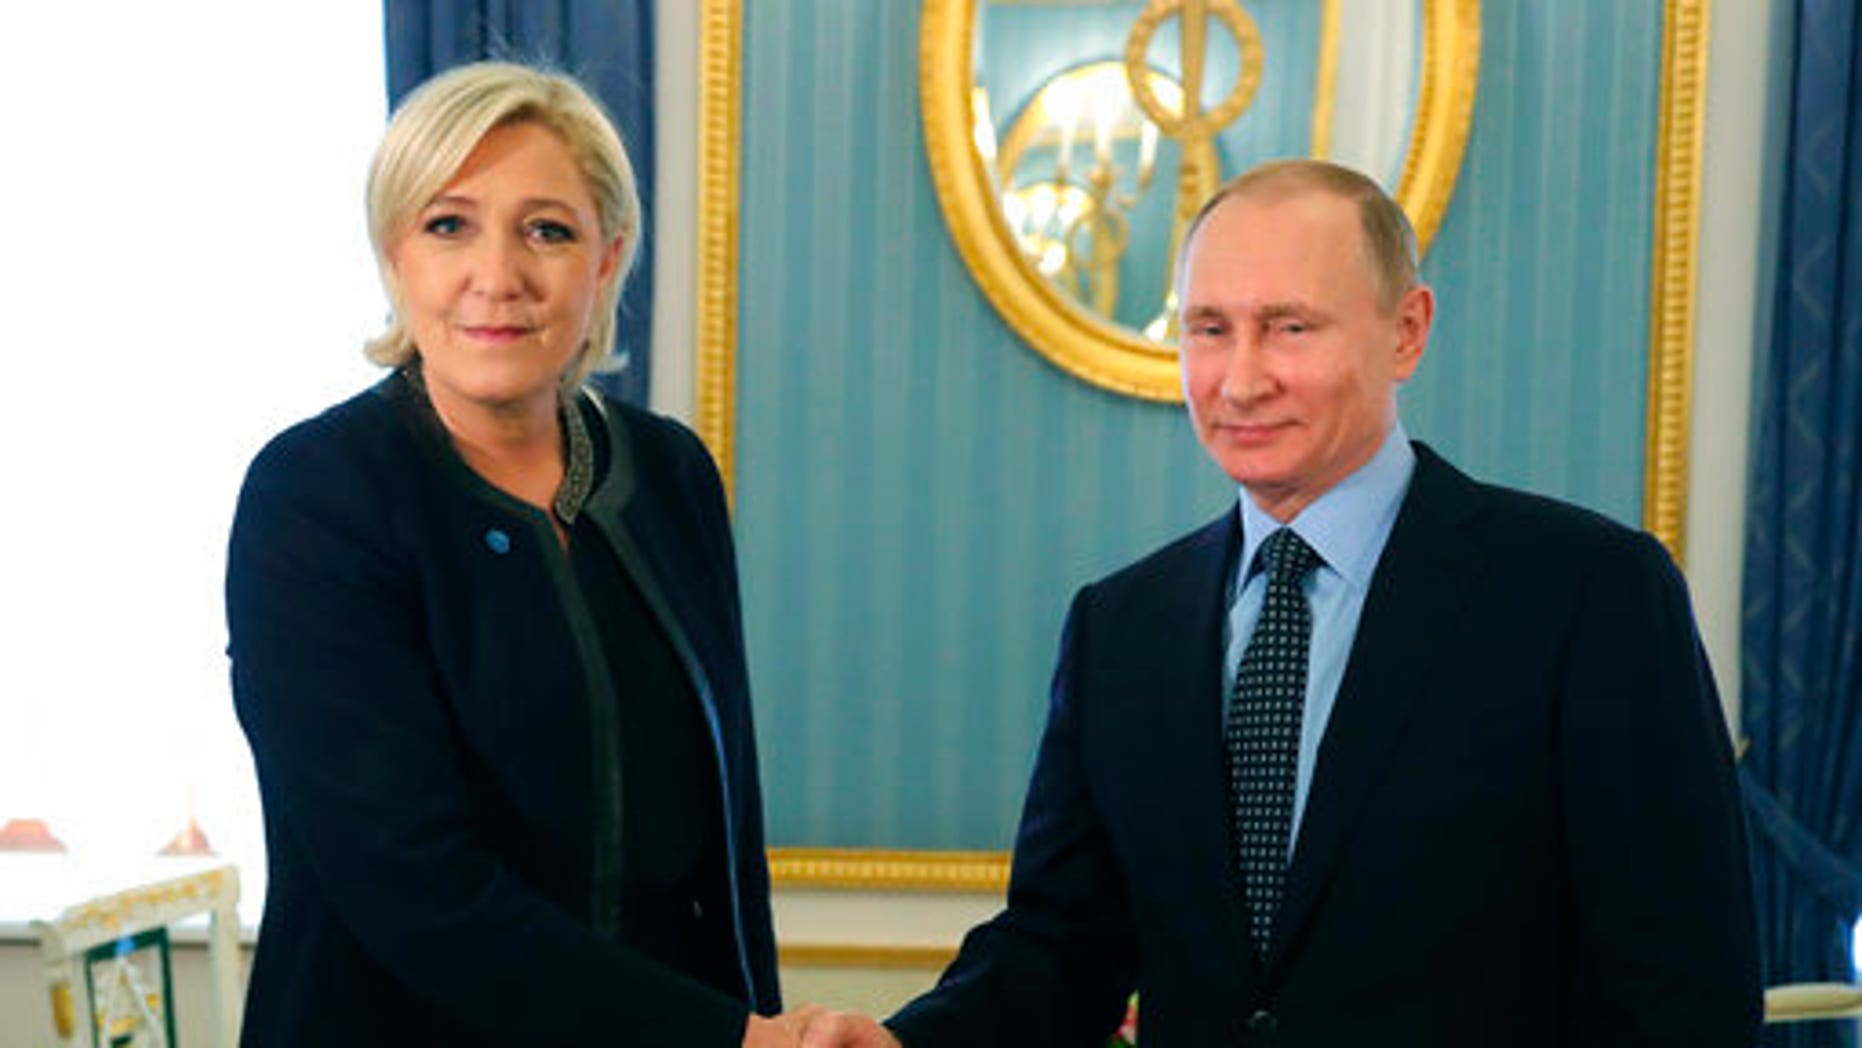 Russian President Vladimir Putin, right, shakes hands with French presidential candidate Marine Le Pen at the Kremlin.